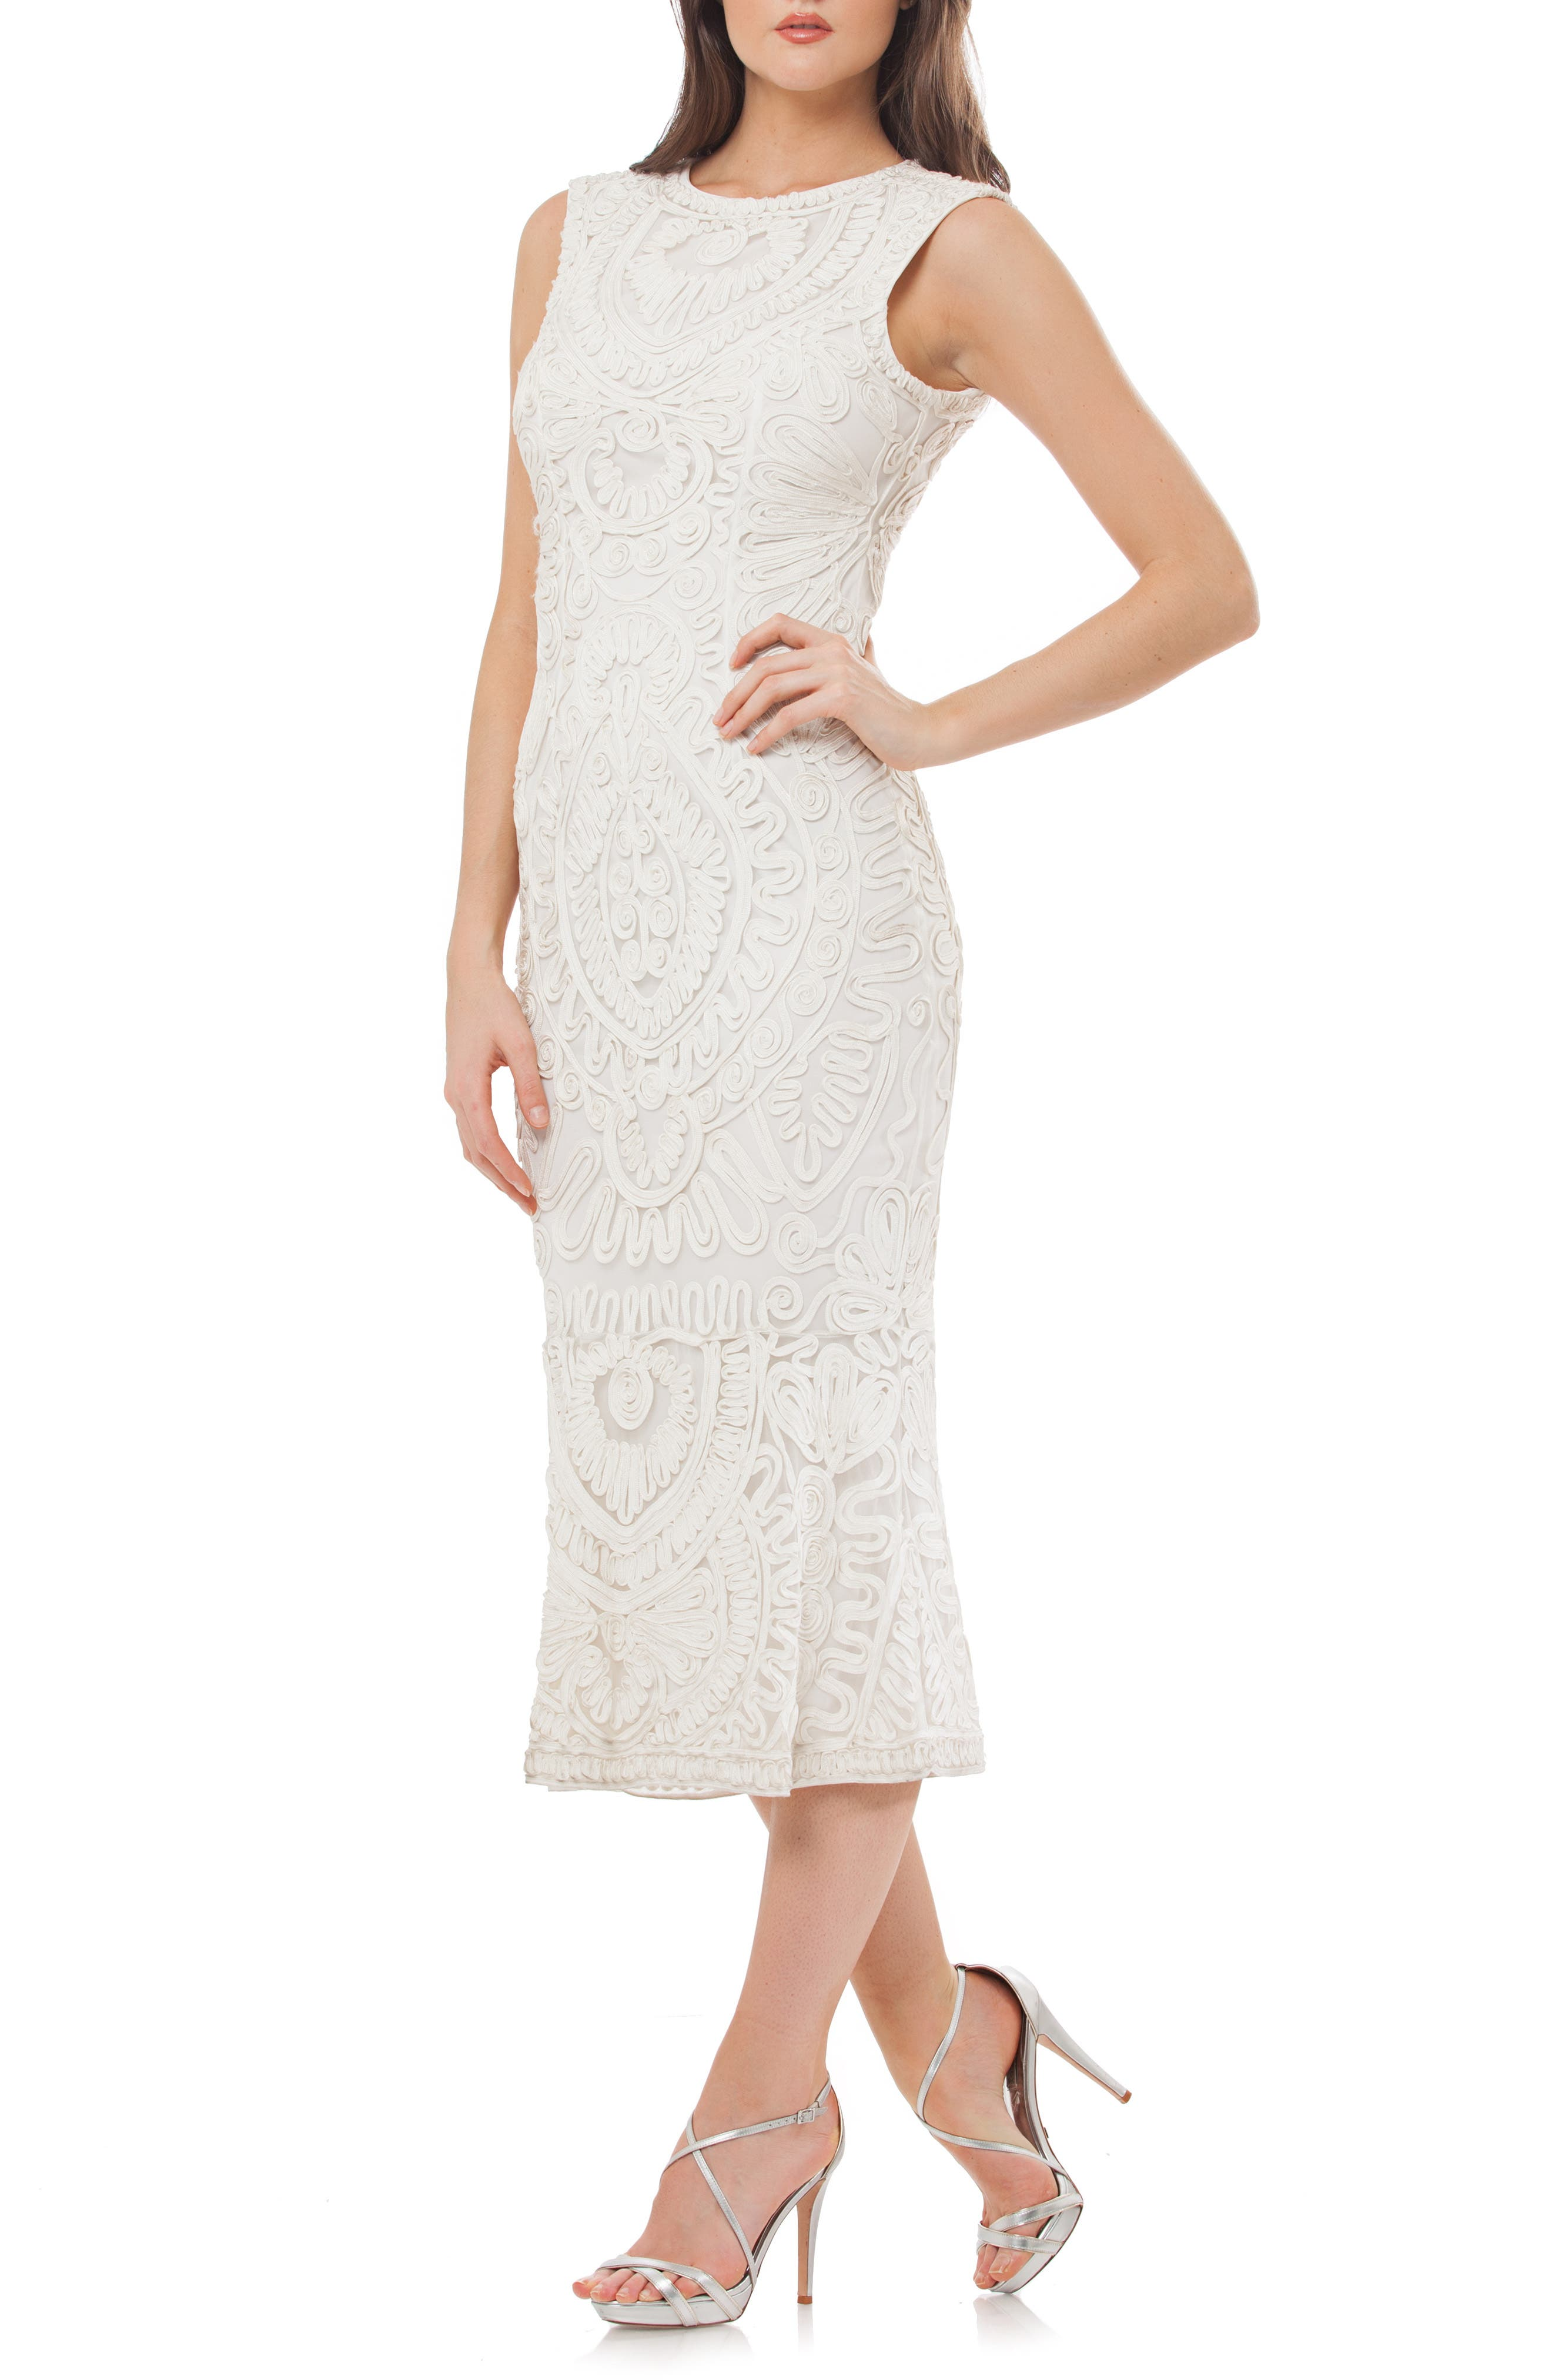 1930s Dresses | 30s Art Deco Dress Womens Js Collections Soutache Mesh Dress Size 6 - Ivory $260.00 AT vintagedancer.com